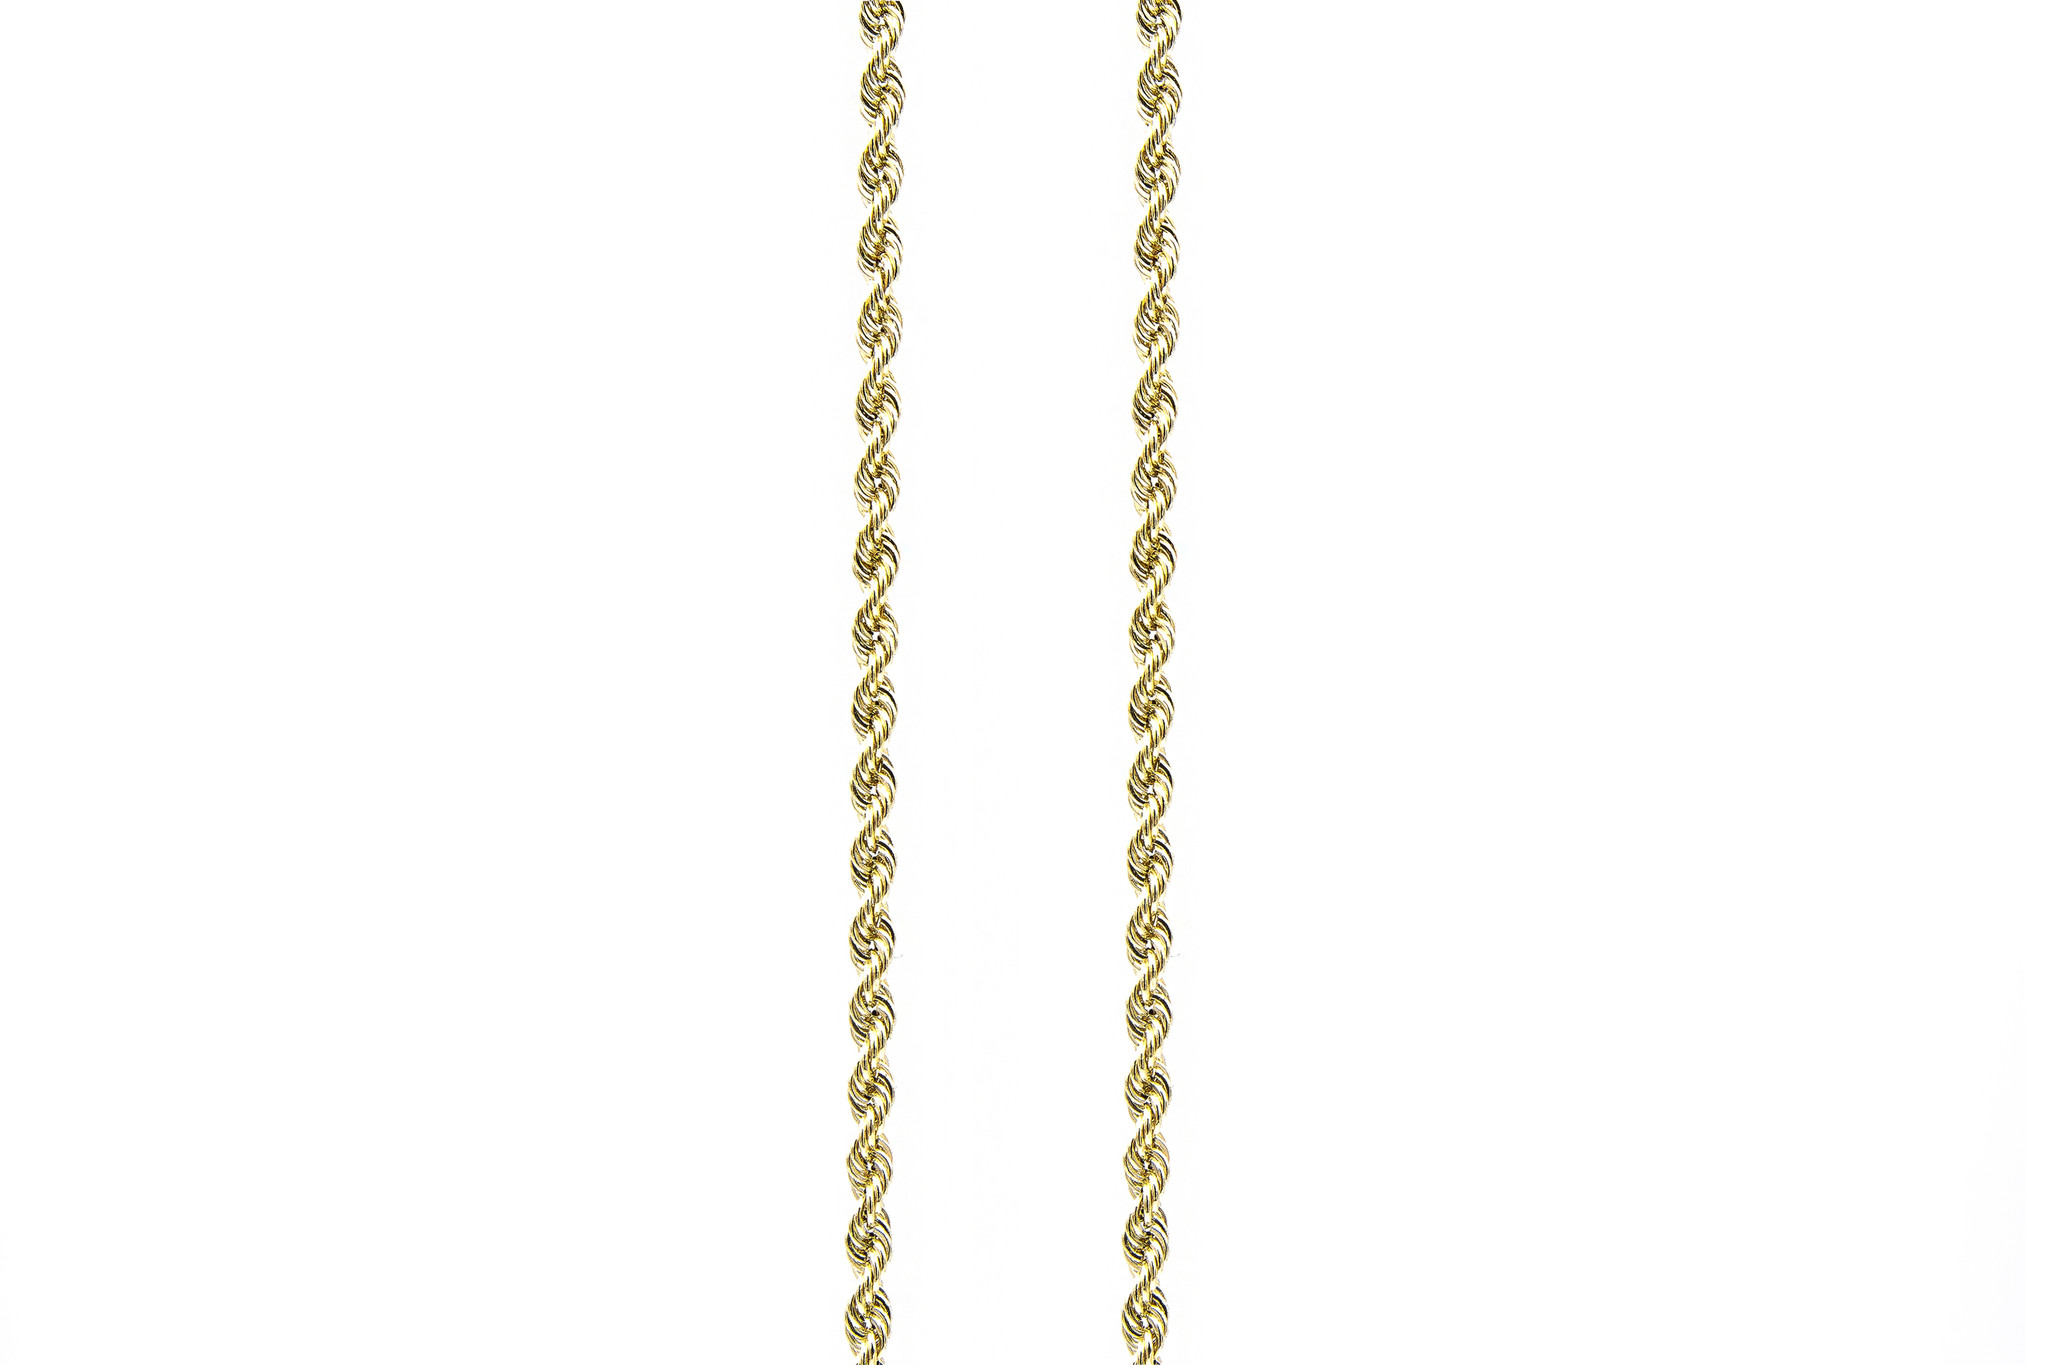 Rope Chain 18k-3.5 mm-1